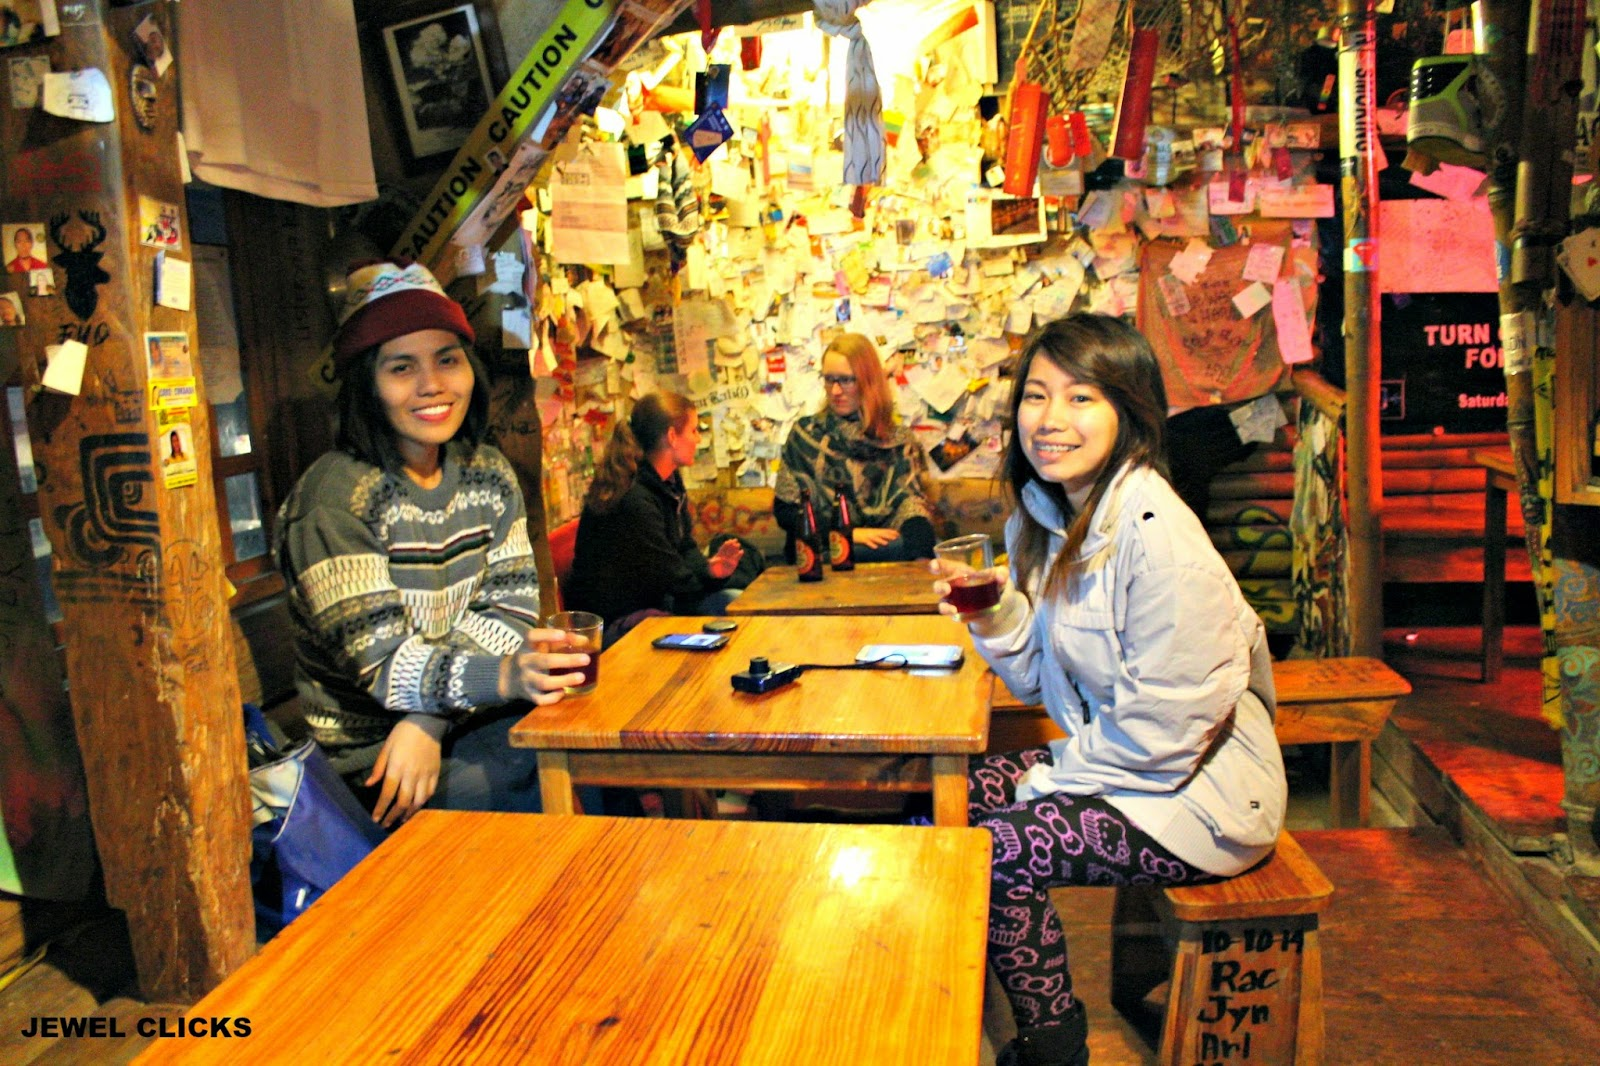 Sagada Pine Cafe Travel 2015 - Jewel Clicks x Island Trotters